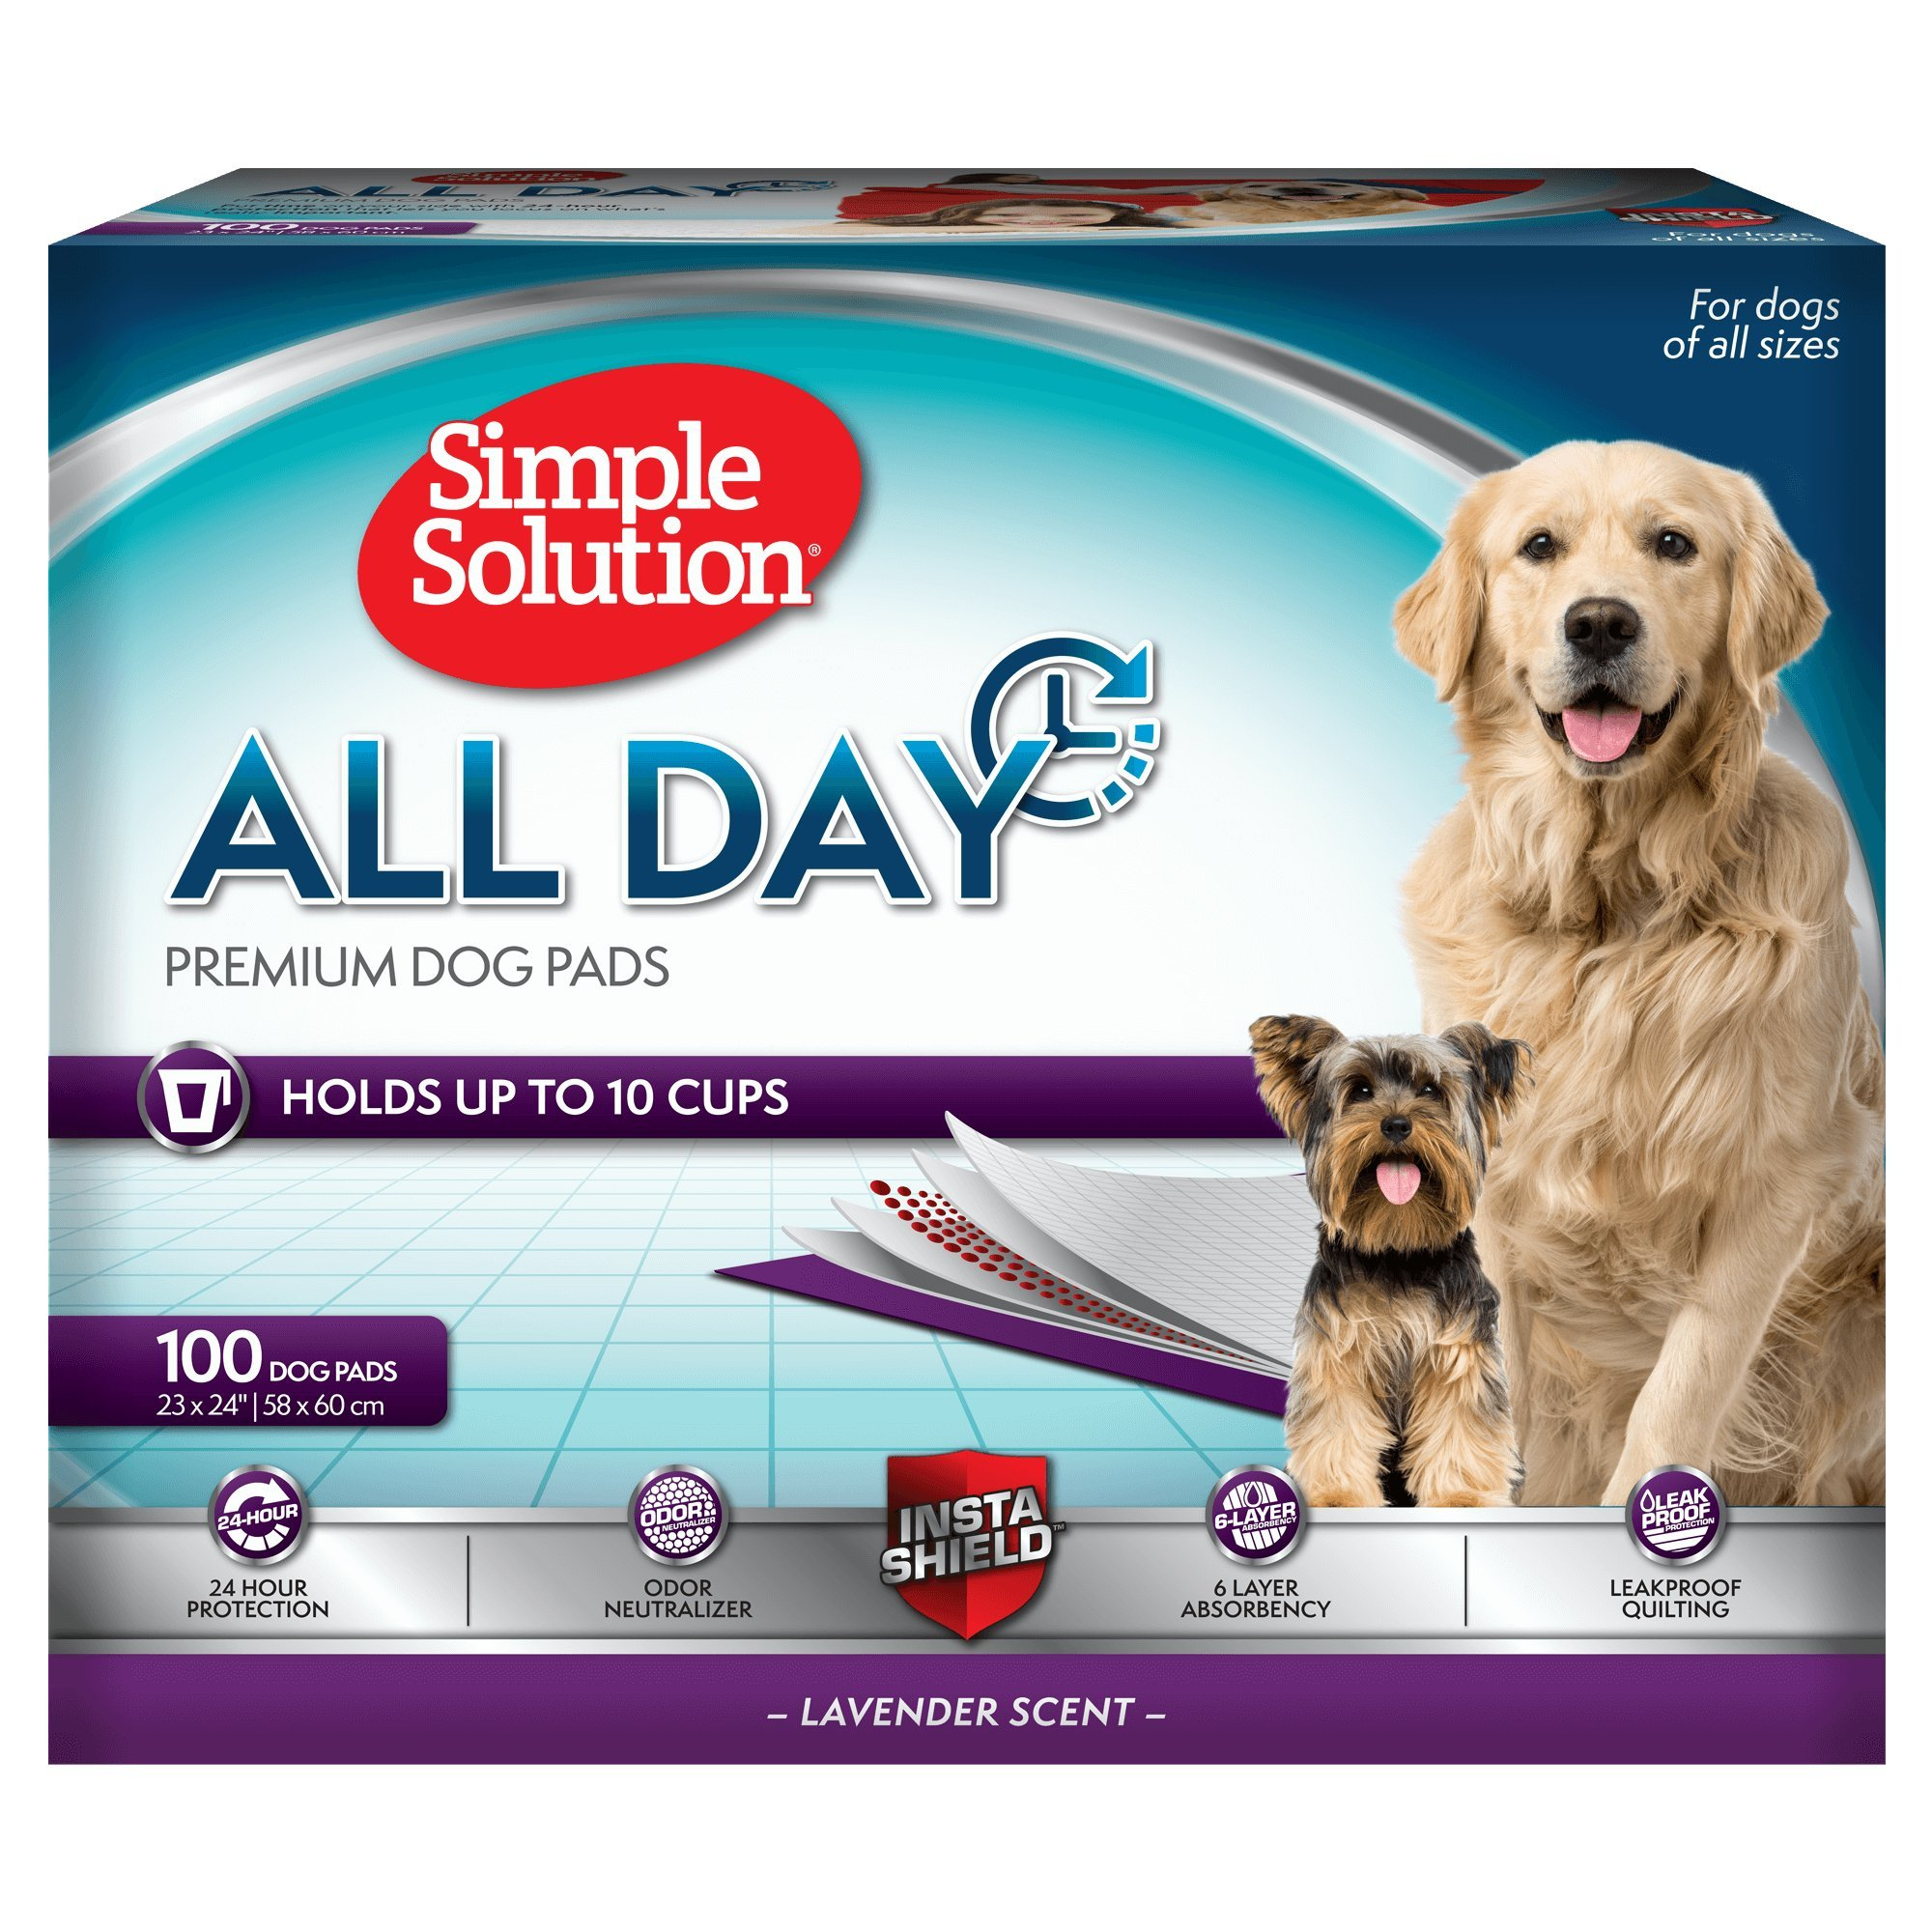 Simple Solution 6-Layer All Day Premium Dog Pads, 23 x 24, Lavender Scent, 100 pads by Simple Solution